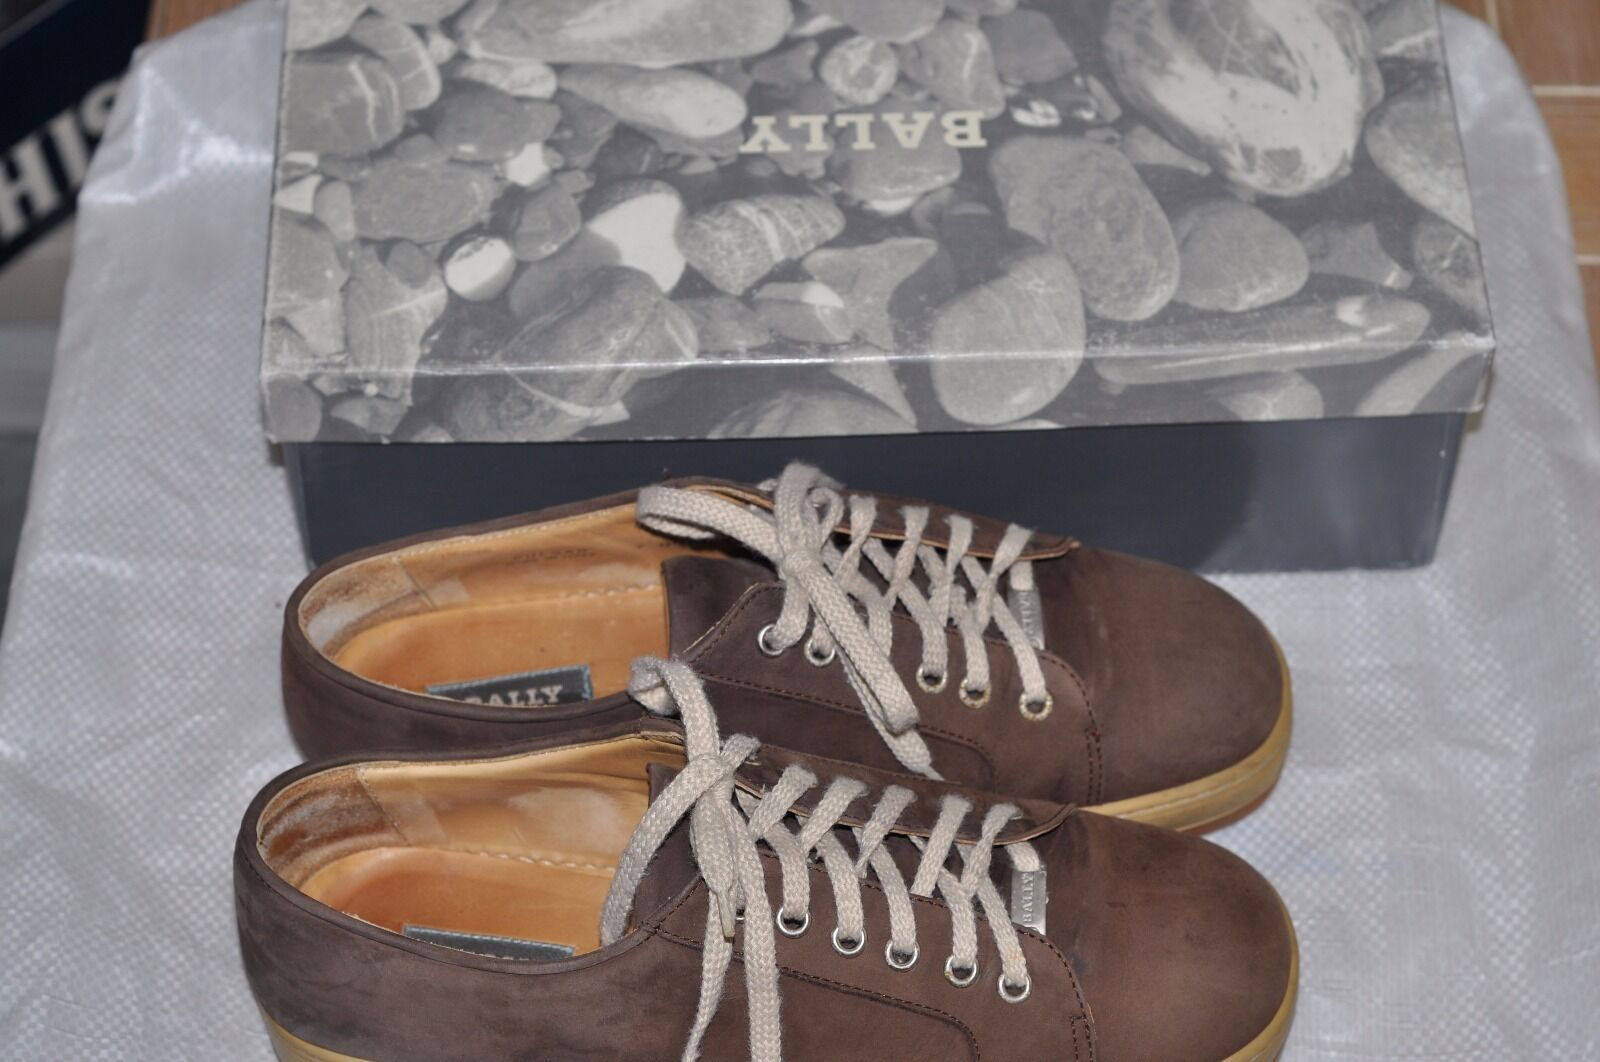 BALLY  Pulsar  brown Suede Lace Up Sneakers shoes  Made EU7 US8 with box